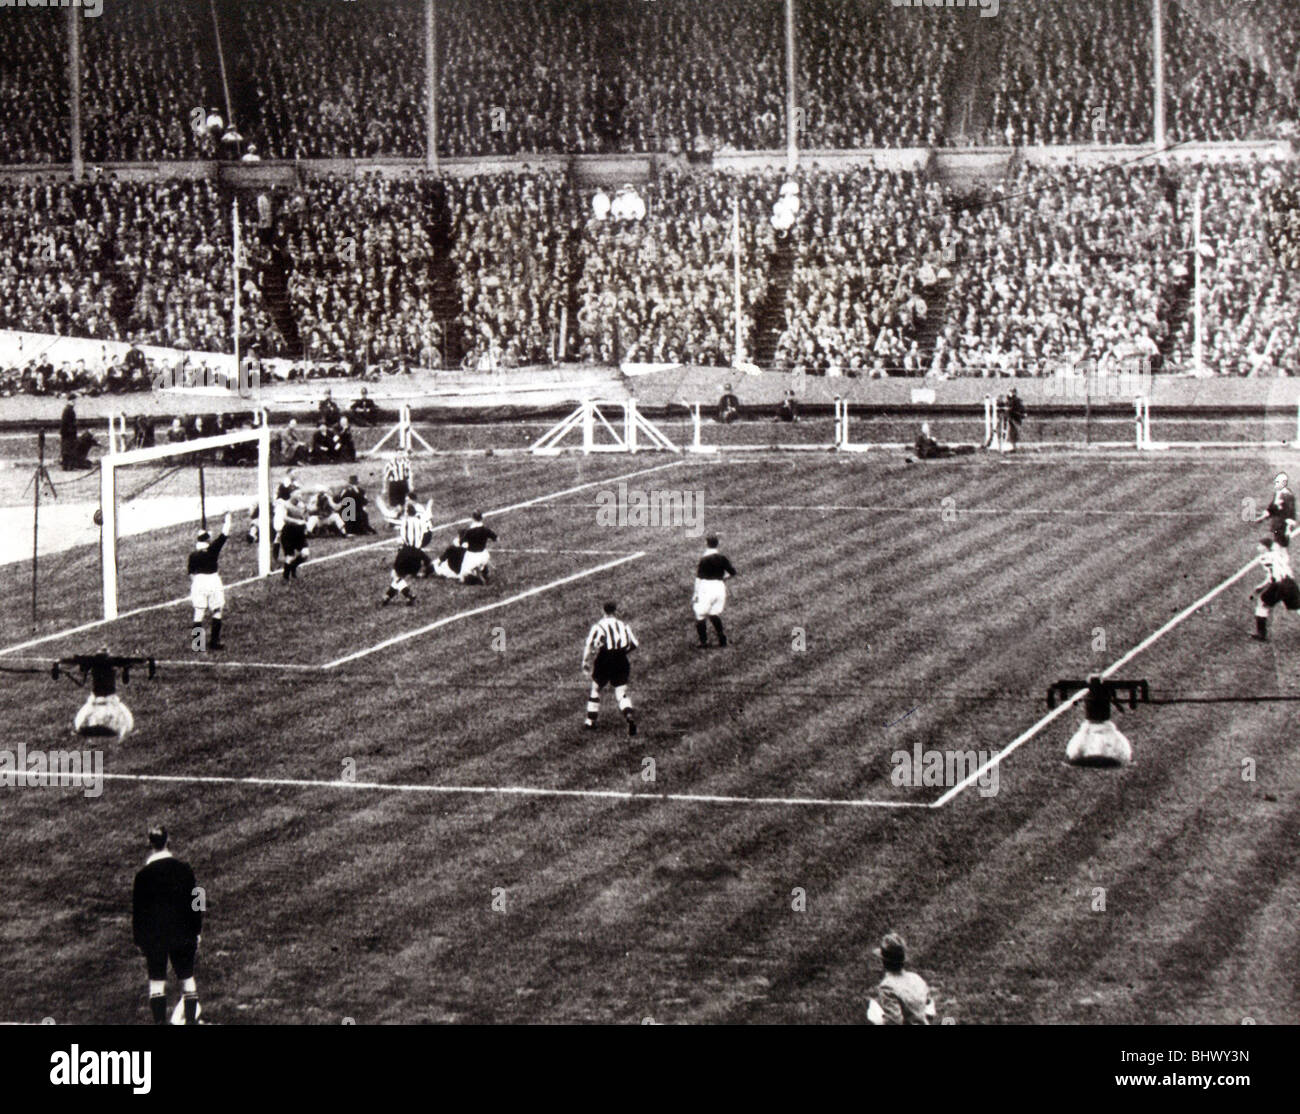 Fa Cup Final 1932 Newcastle United Vs Arsenal Newcastle United Won Stock Photo Alamy